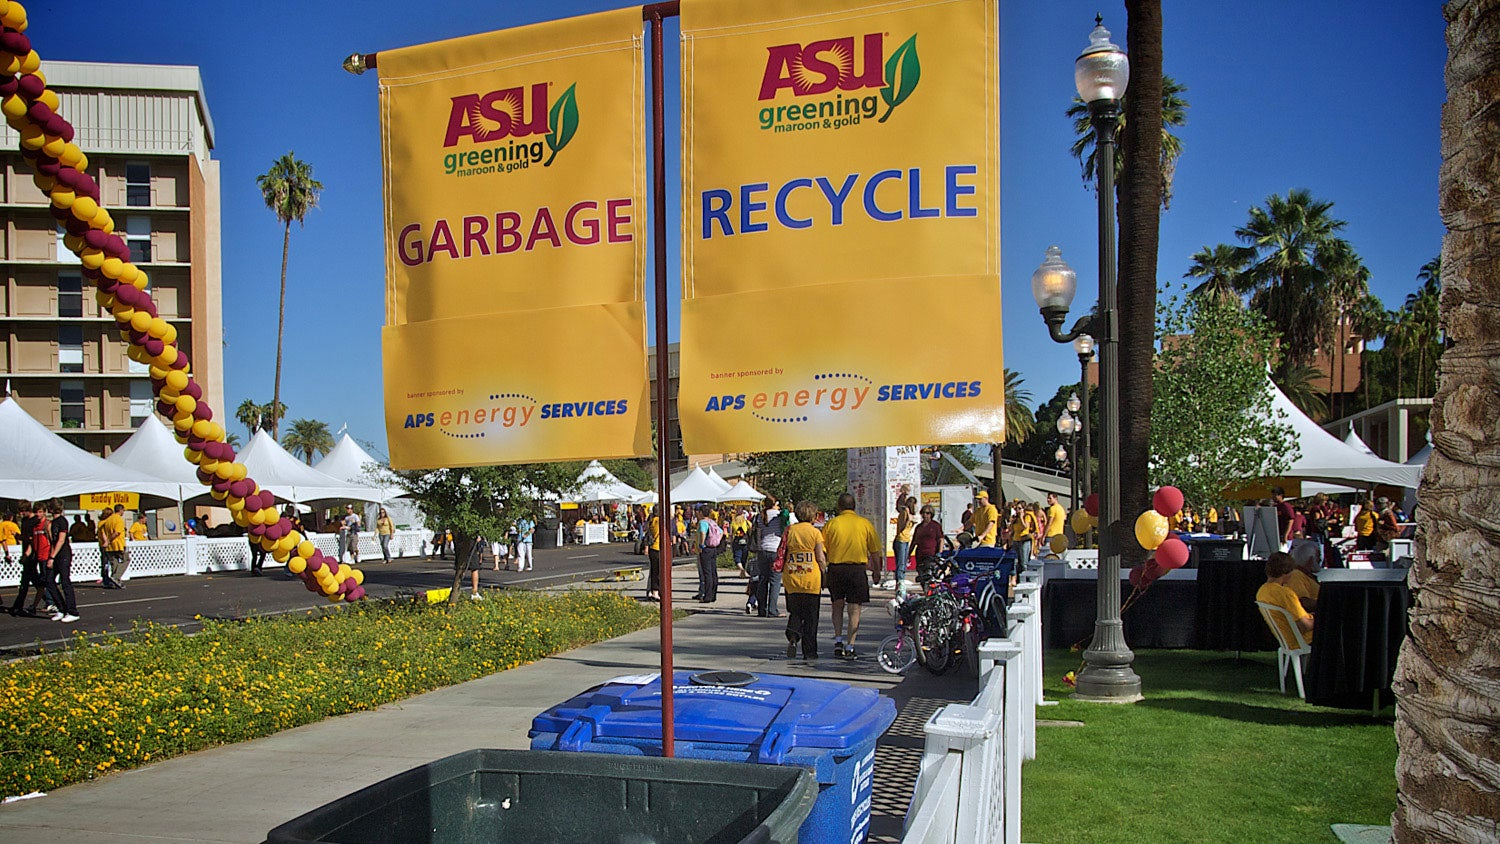 An outdoor ASU event is pictured, with ASU's special garbage and recycling containers in view.